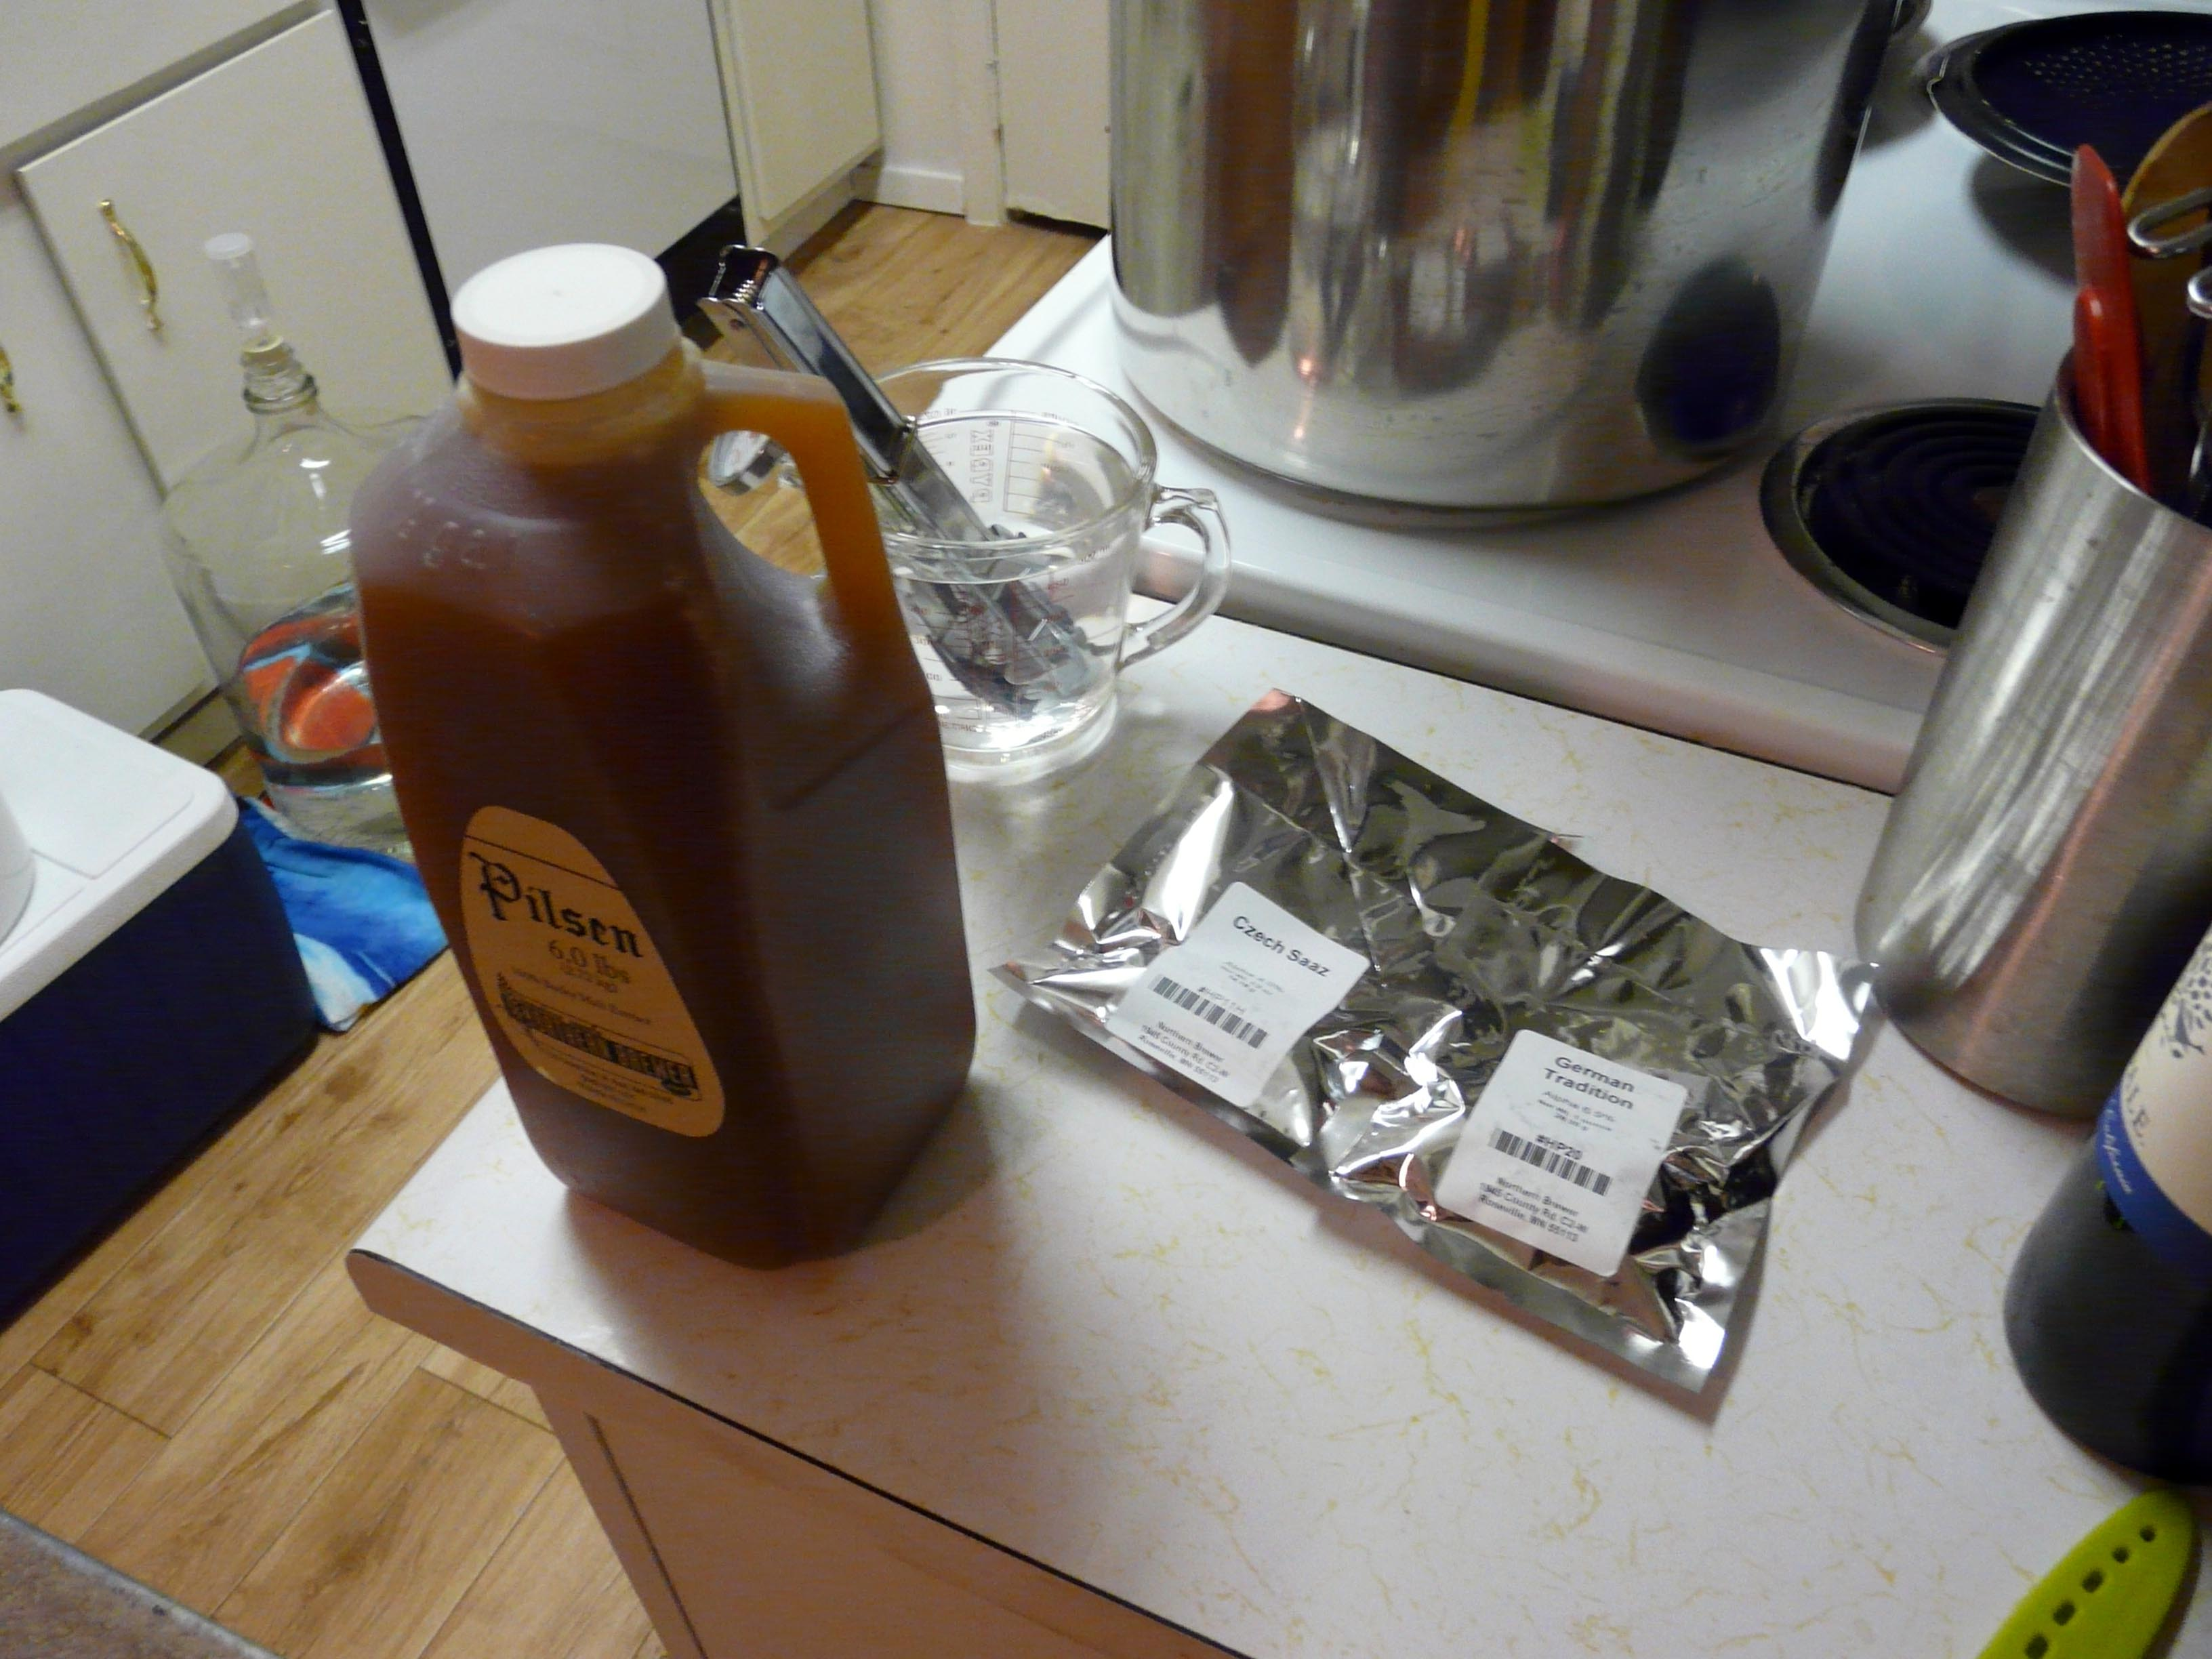 Liquid malt extract and vacuum-packed hops